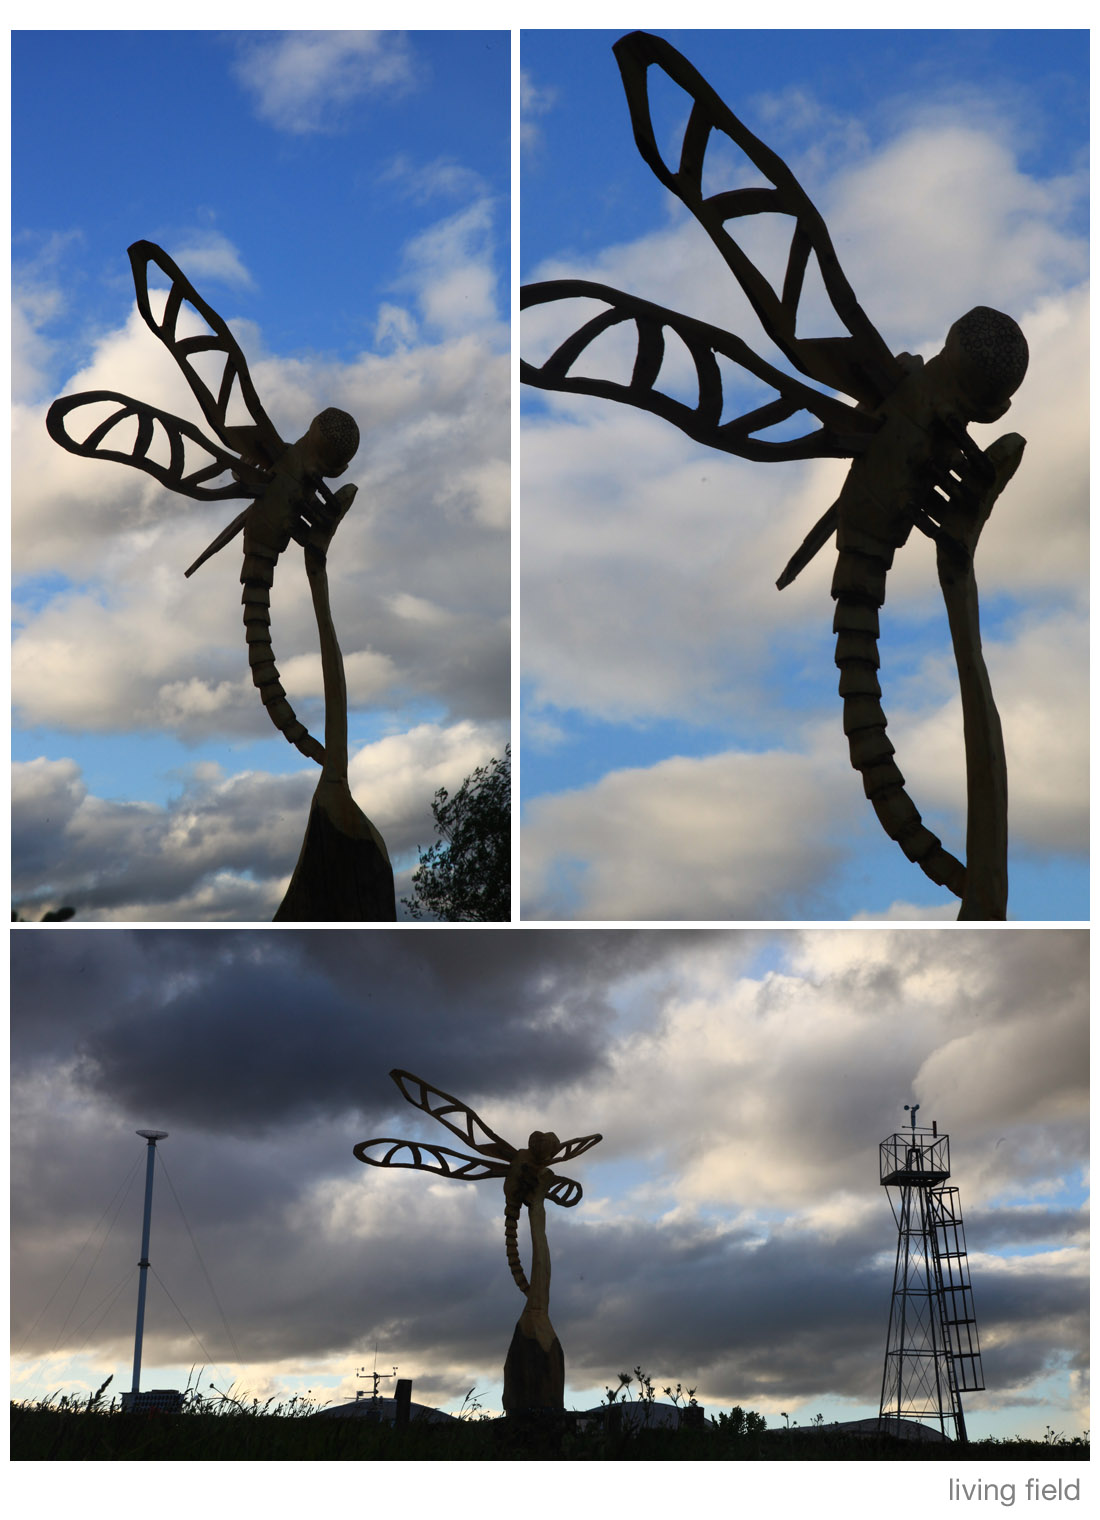 Dragonfly by Dave Roberts installed in the Garden 28 May 2015 (Living Field)